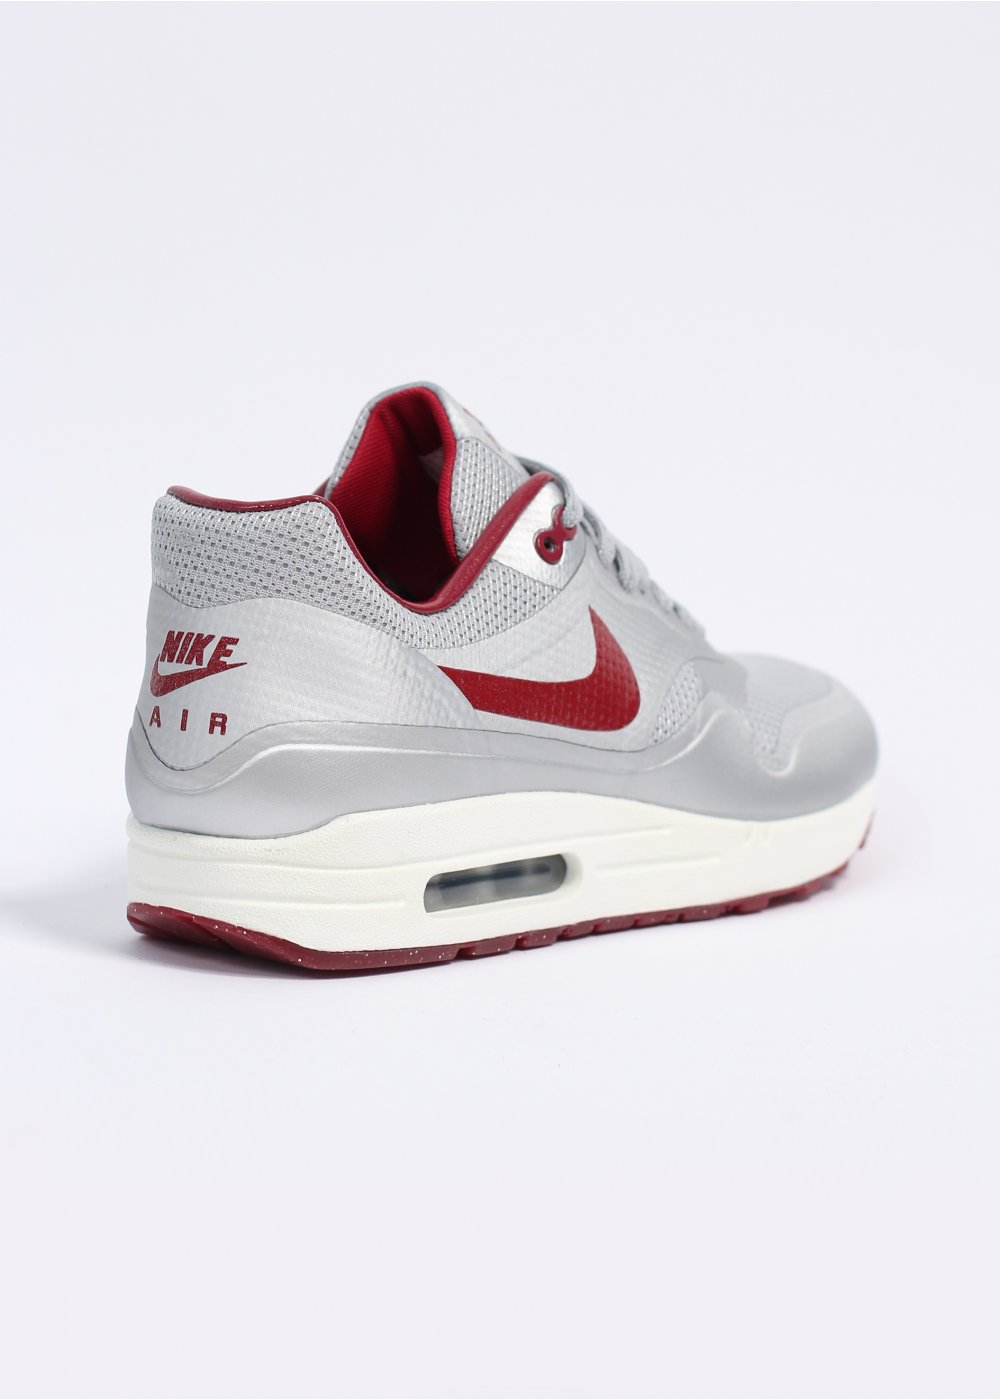 Nike Air Max 1 Hyperfuse HYP QS Trainers